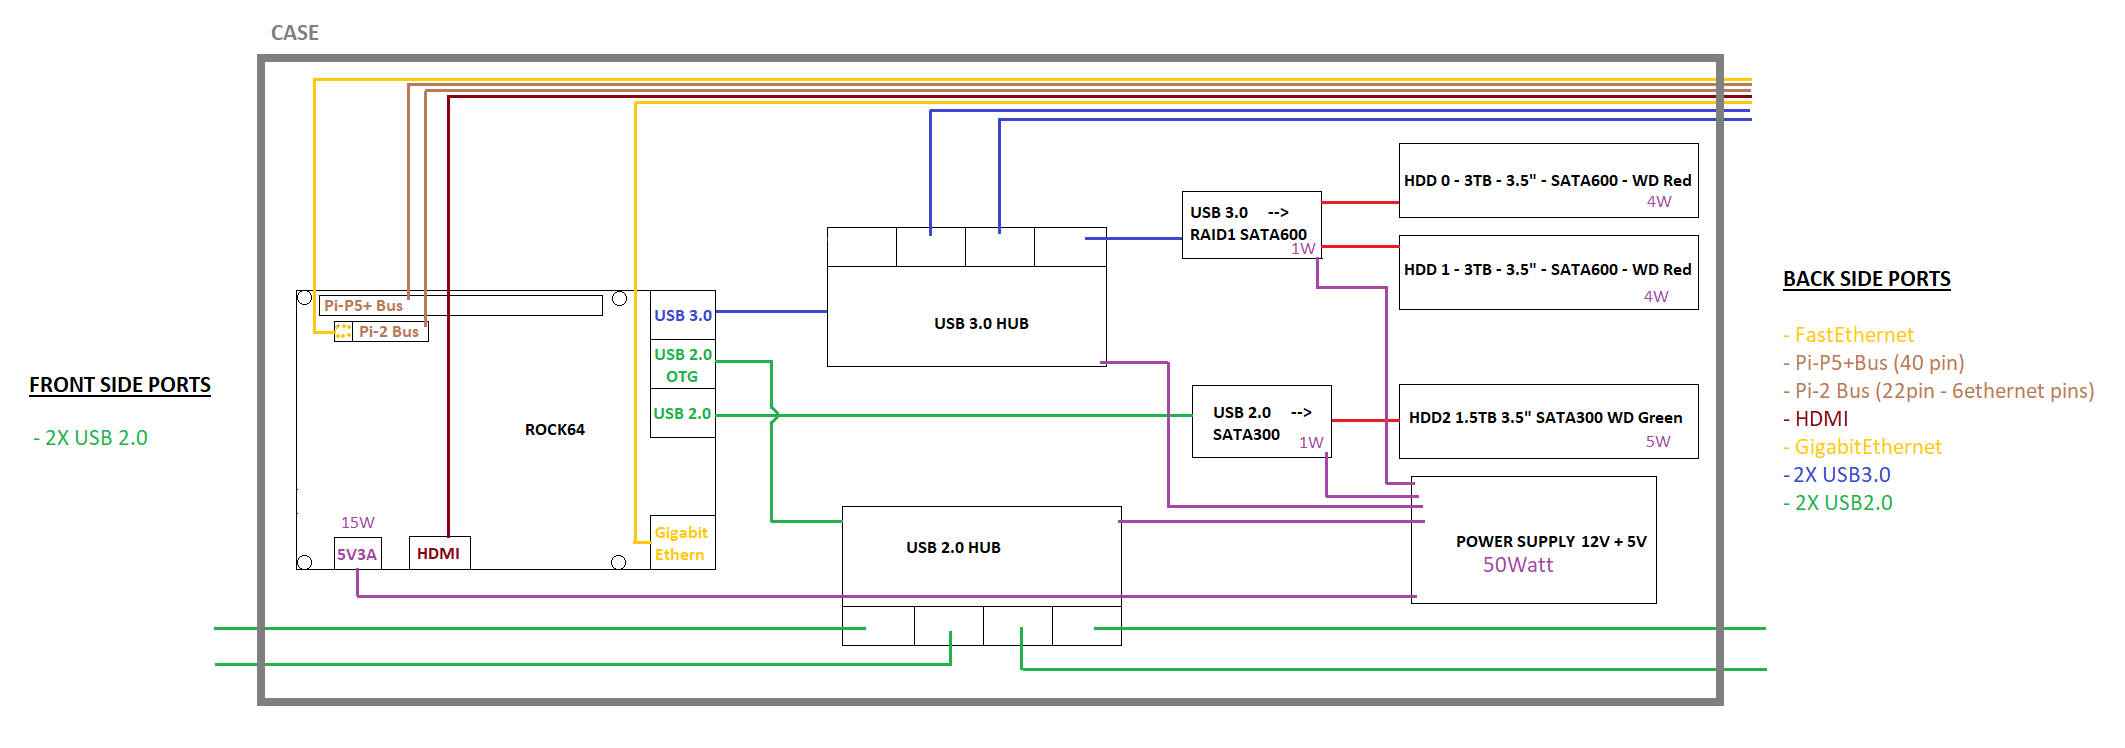 usb 3 0 cable wiring diagram 2 93 chevy 1500 radio to ethernet great installation of rock64 nas project rh forum pine64 org pinout connector types